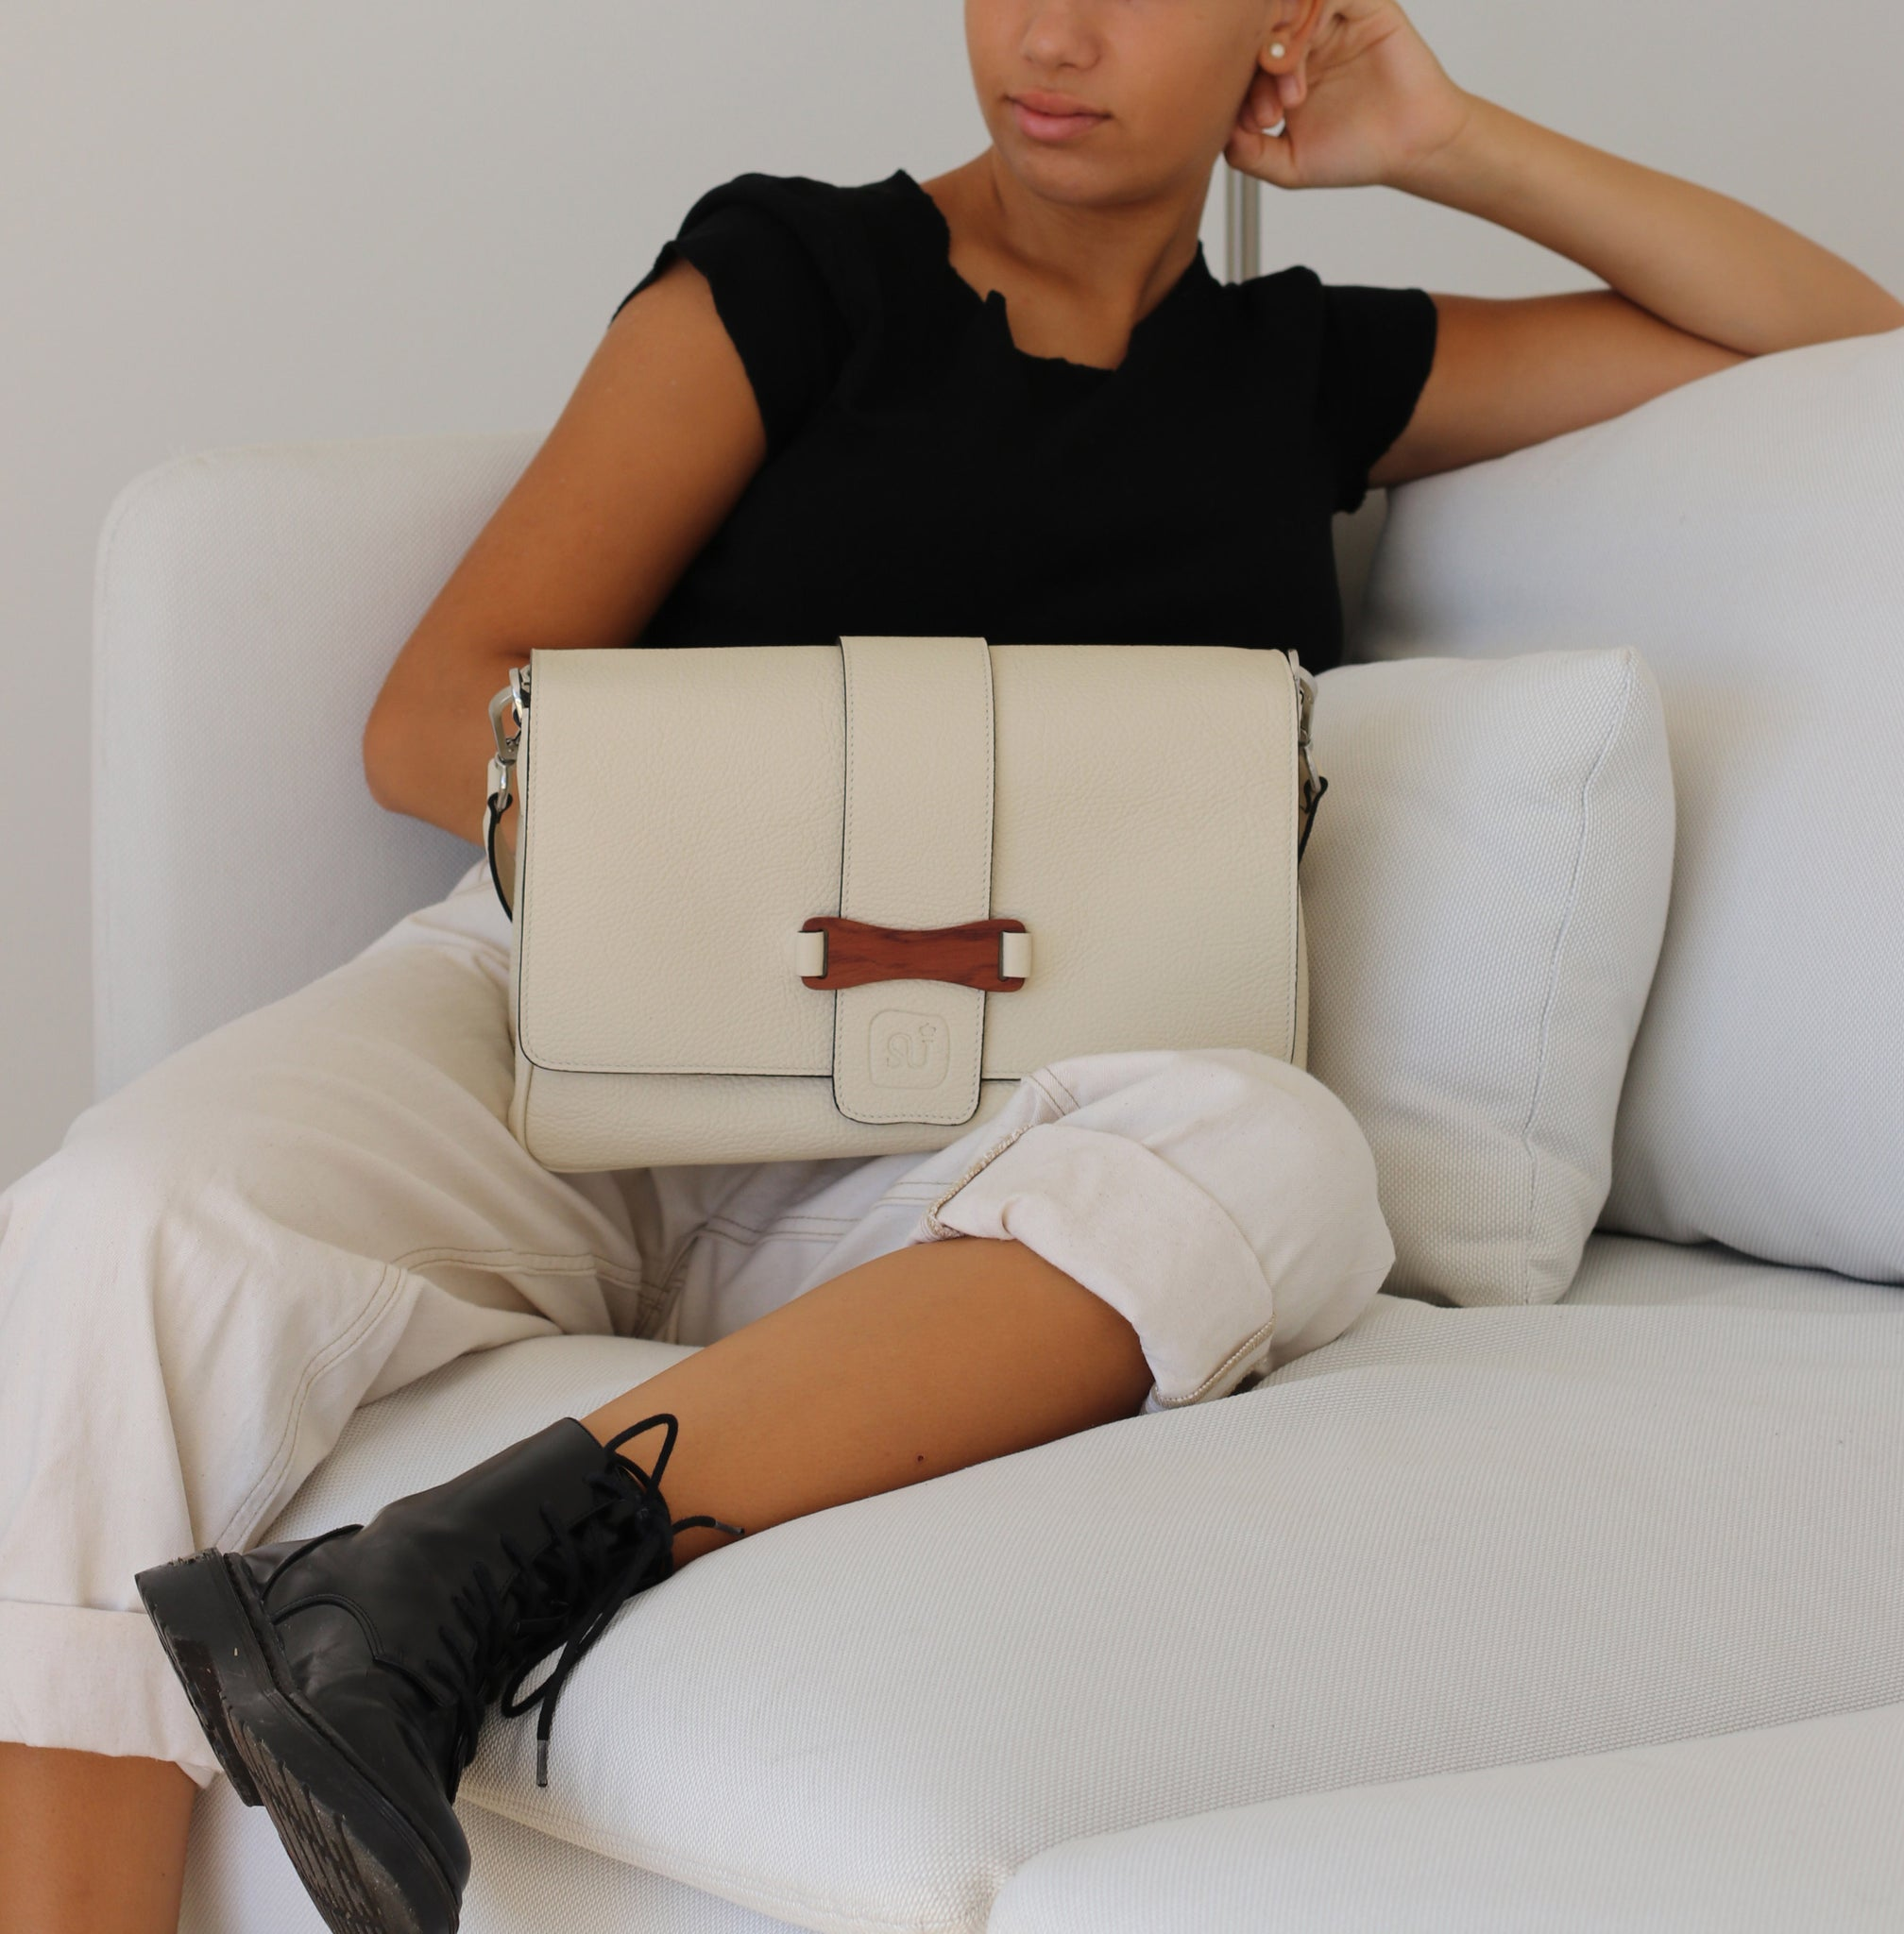 Bags-by-Sumageza-SU-Bubinga-ladies-bag-elegant-shoulder-bag-in-beige-calf-leather-presented-by-young-lady-on-beige-couch